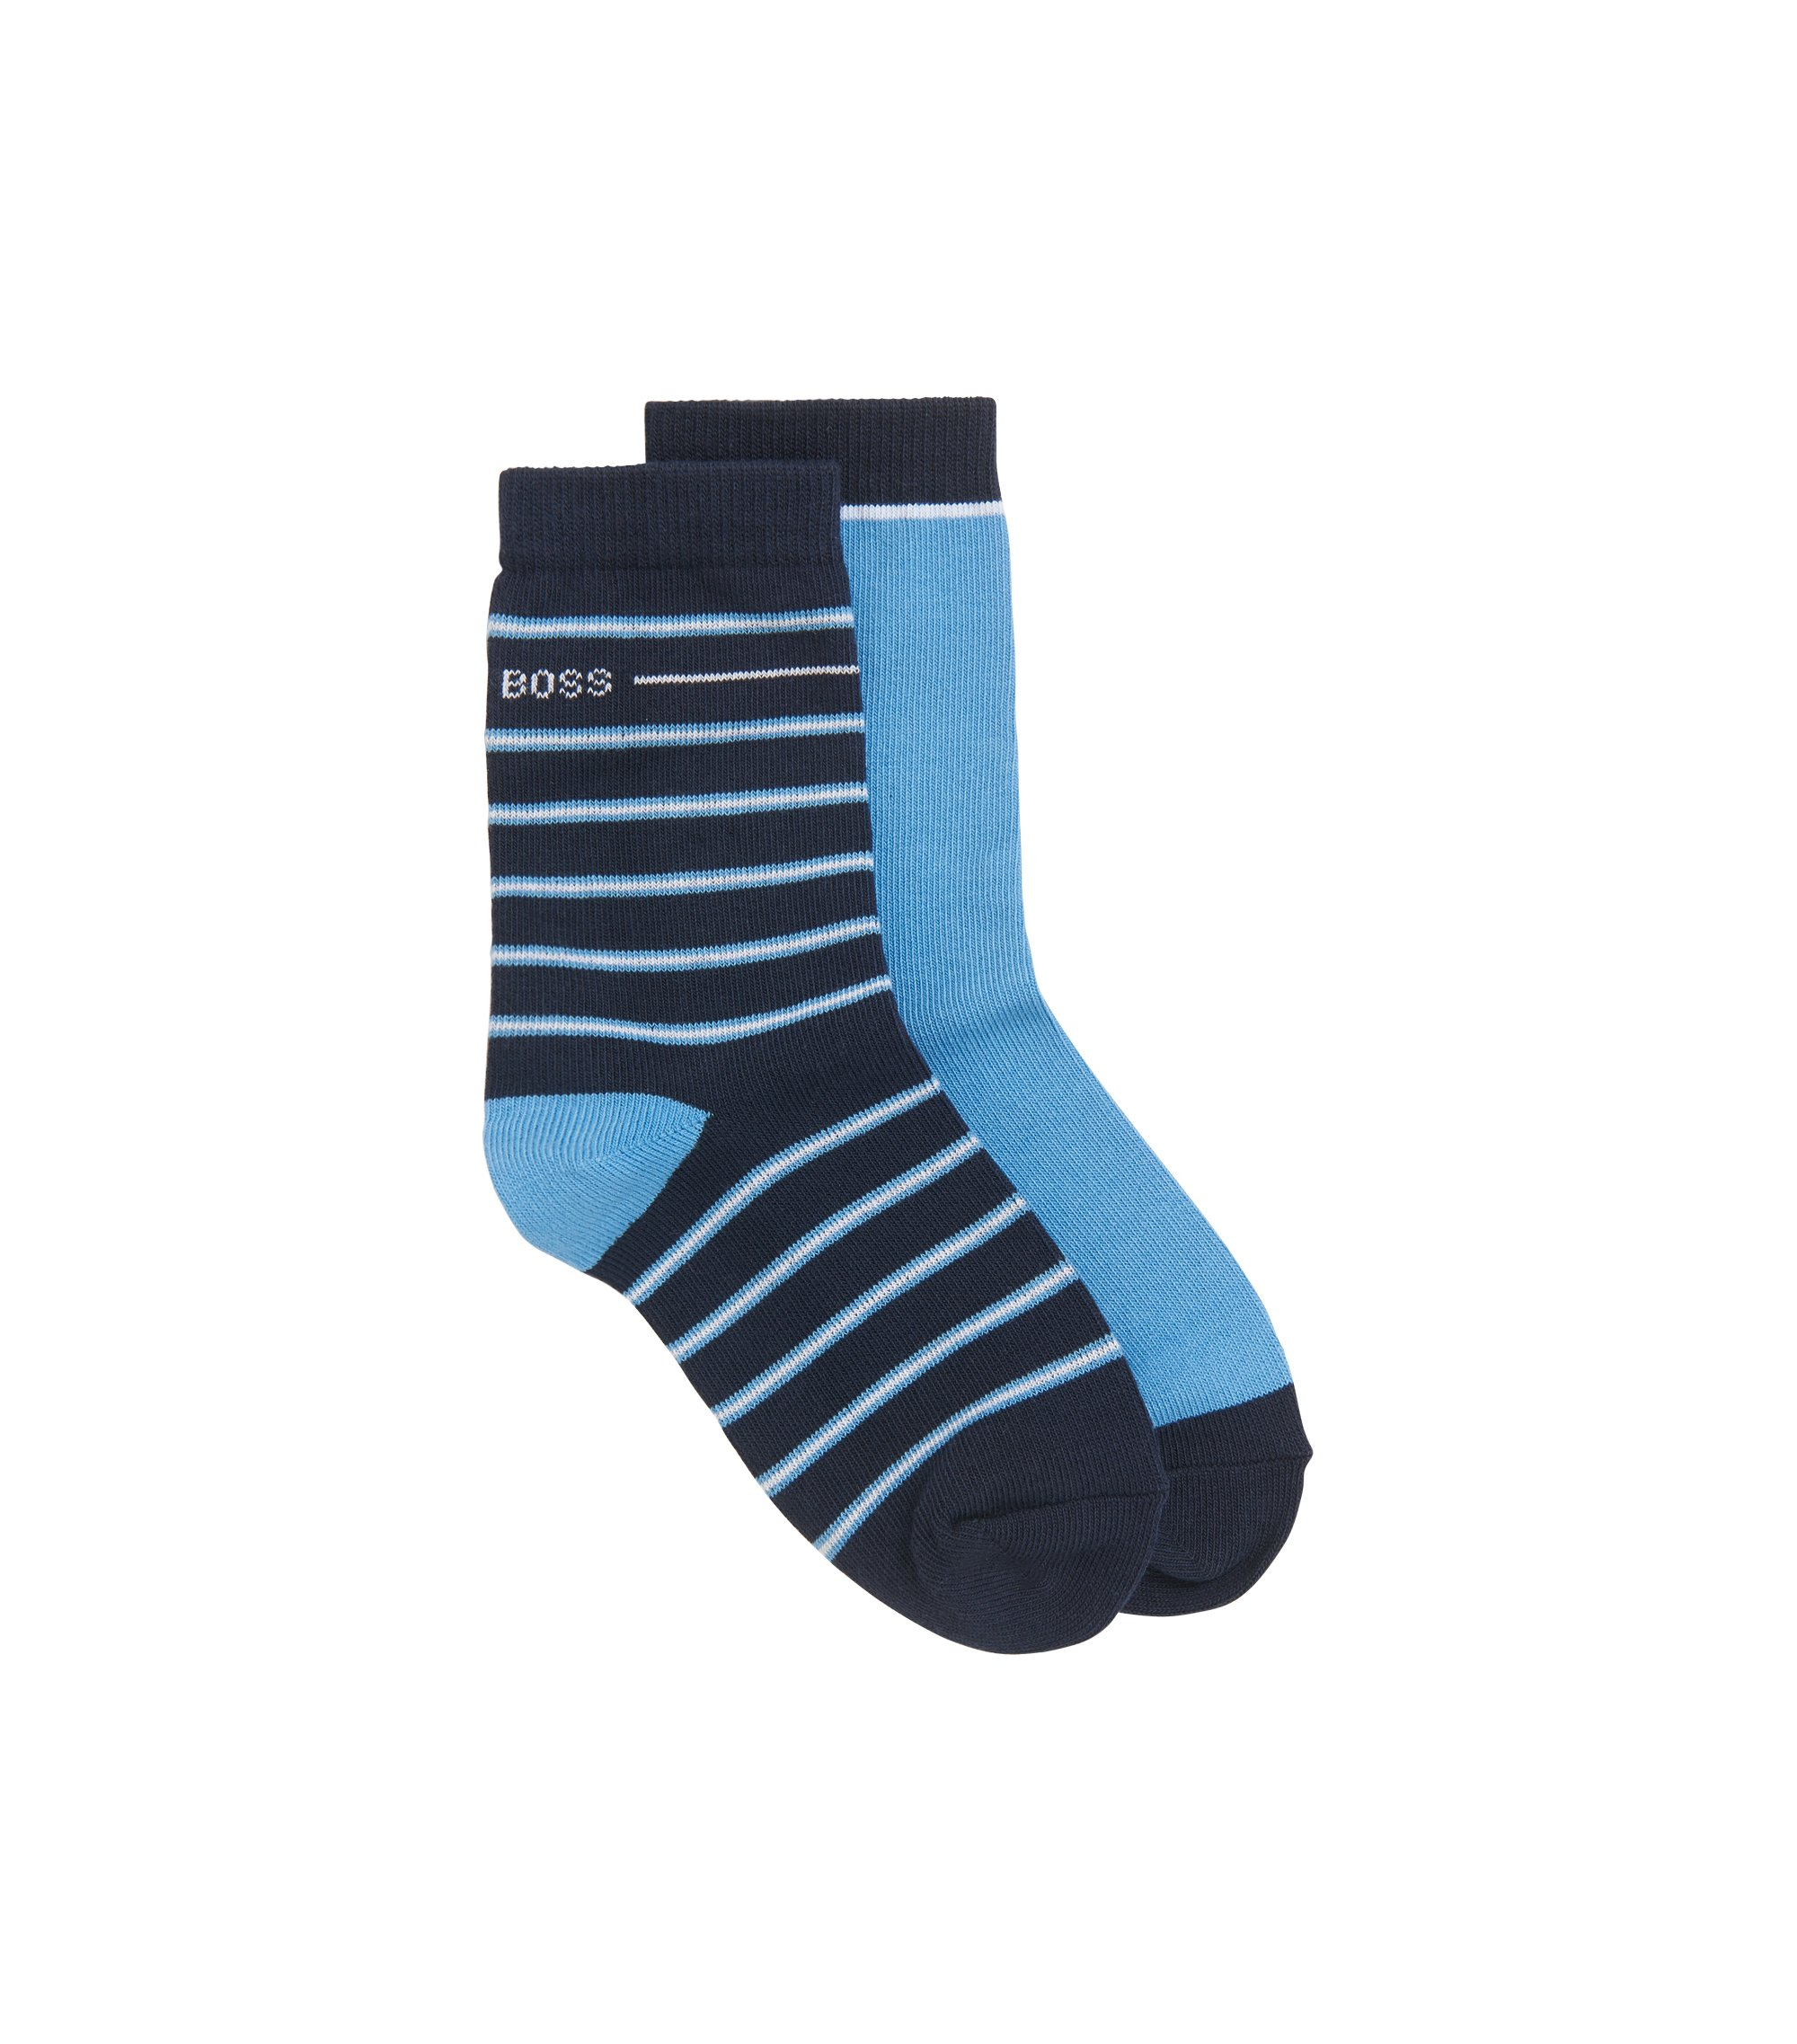 Kids' socks in a stretch-cotton blend, Patterned